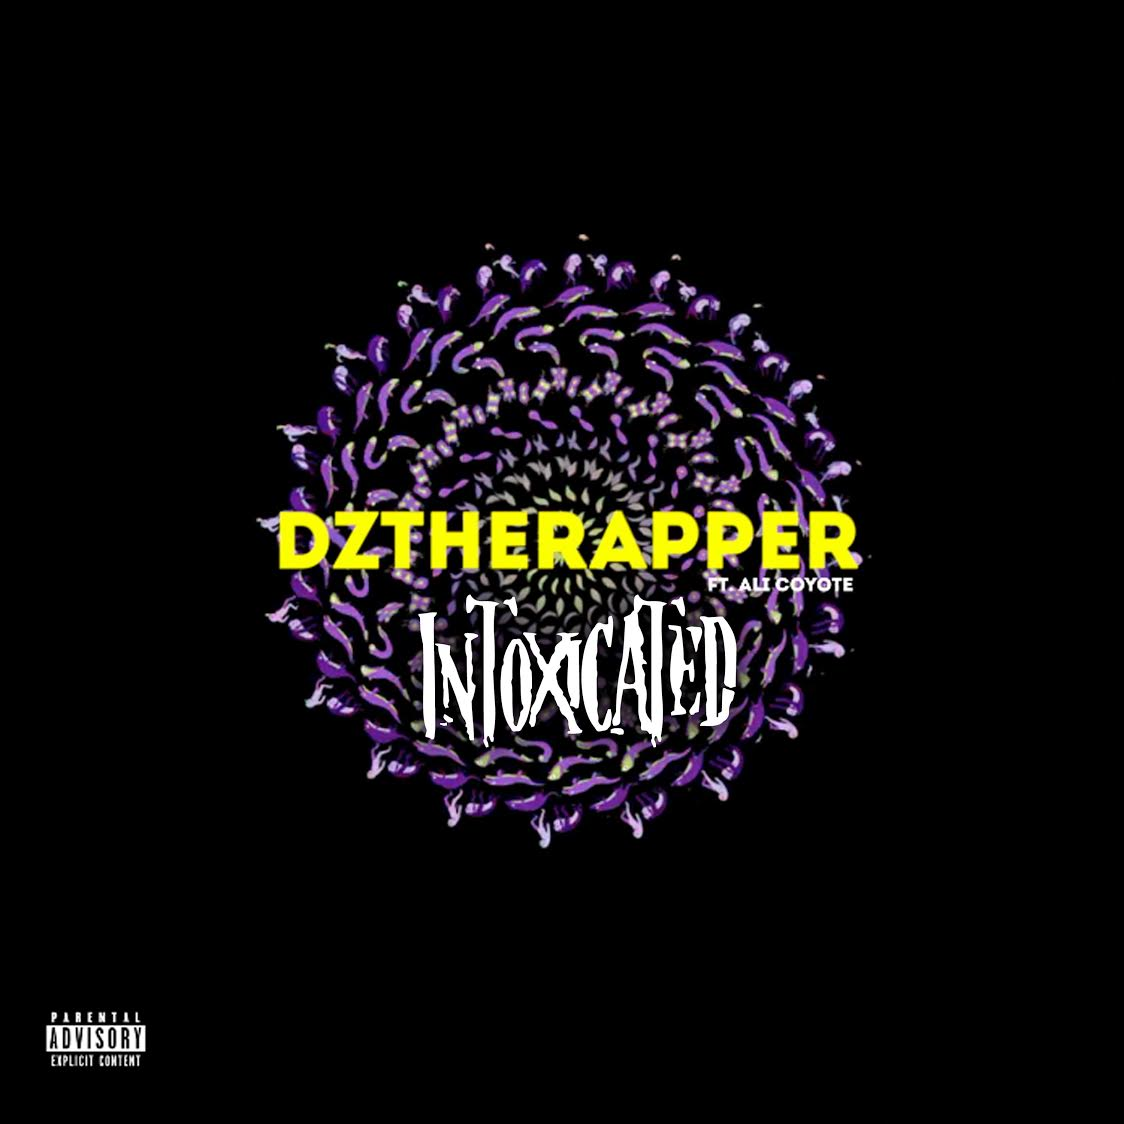 New Music: Dztherapper – Intoxicated Featuring Ali Coyote Produced By Rippa Tha Kid | @Dztherapper